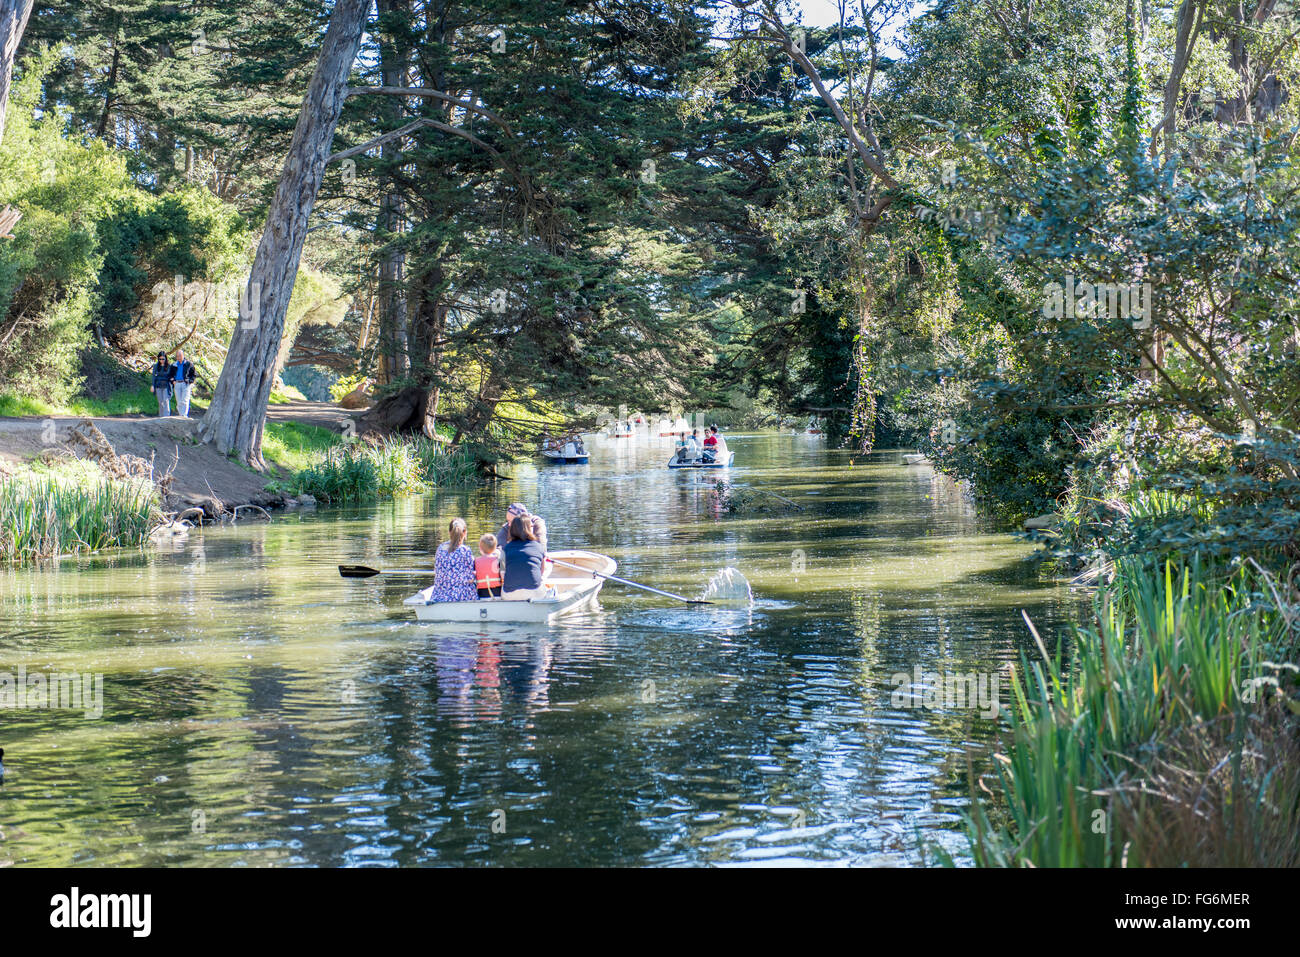 Boating on Stow Lake in Golden Gate Park, San Francsico, California, USA - Stock Image